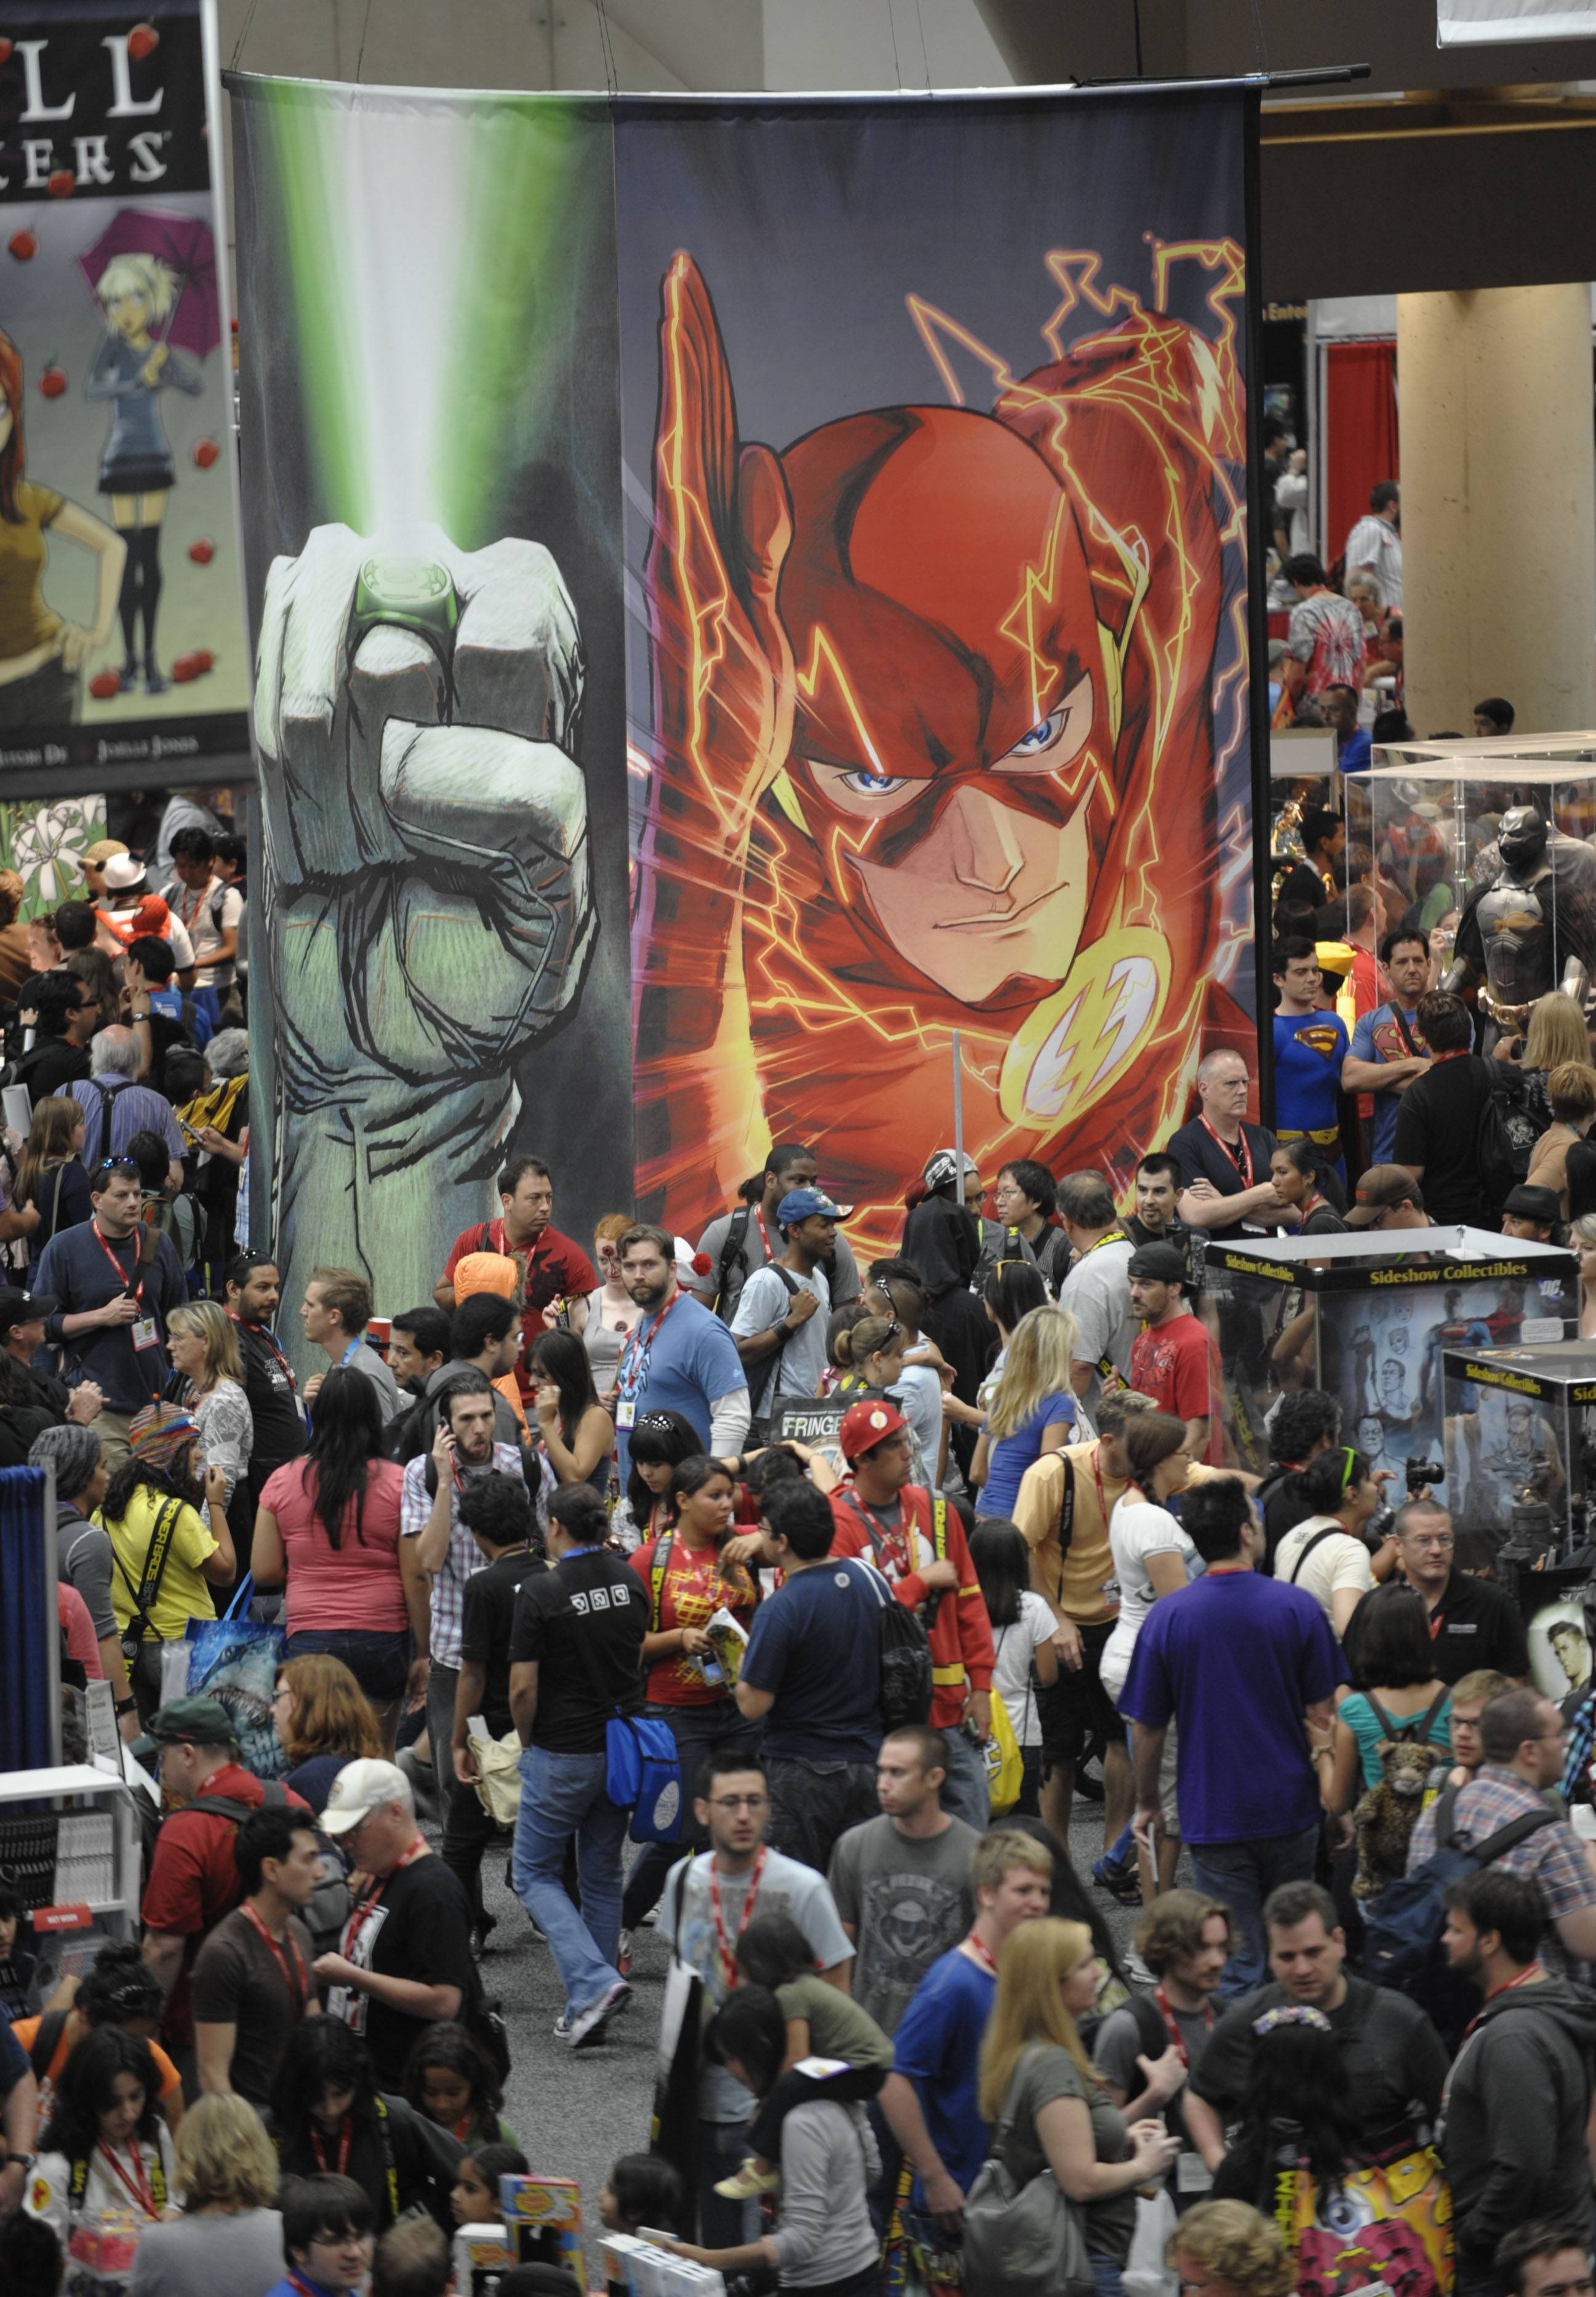 Comic-Con closes after 4 days of pop-culture fun